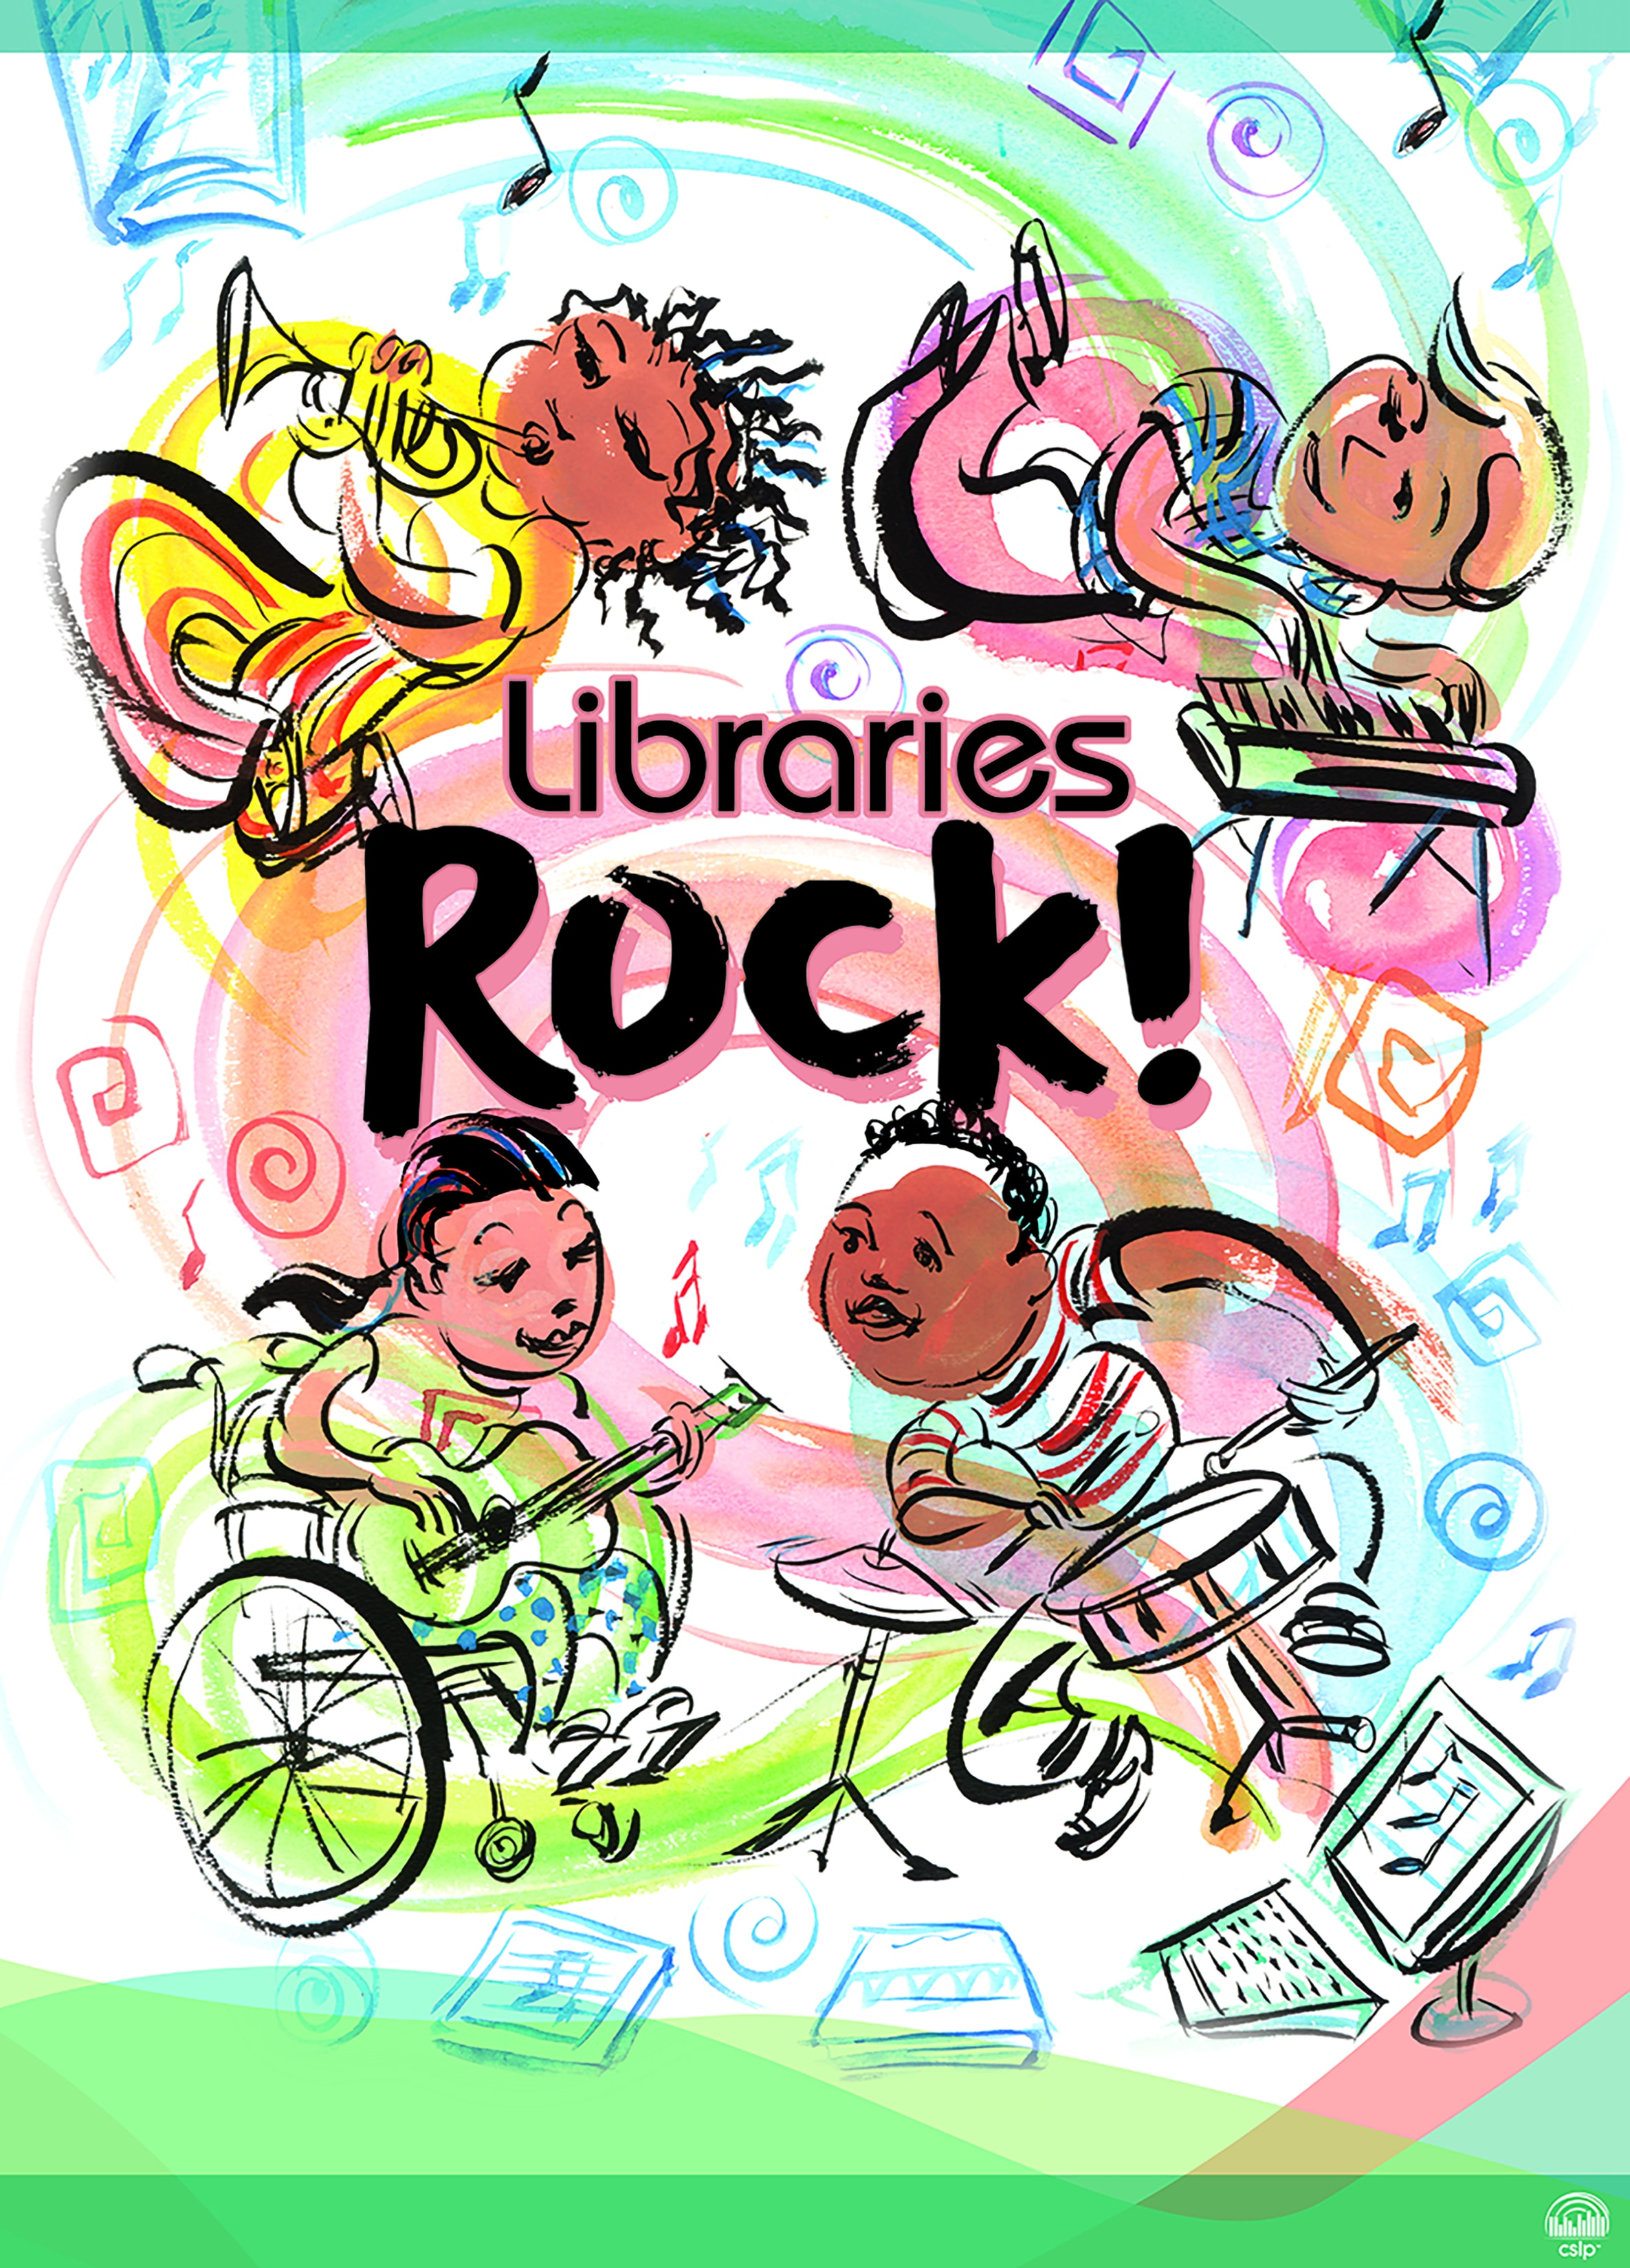 Libraries Rock Resized Photo.jpg